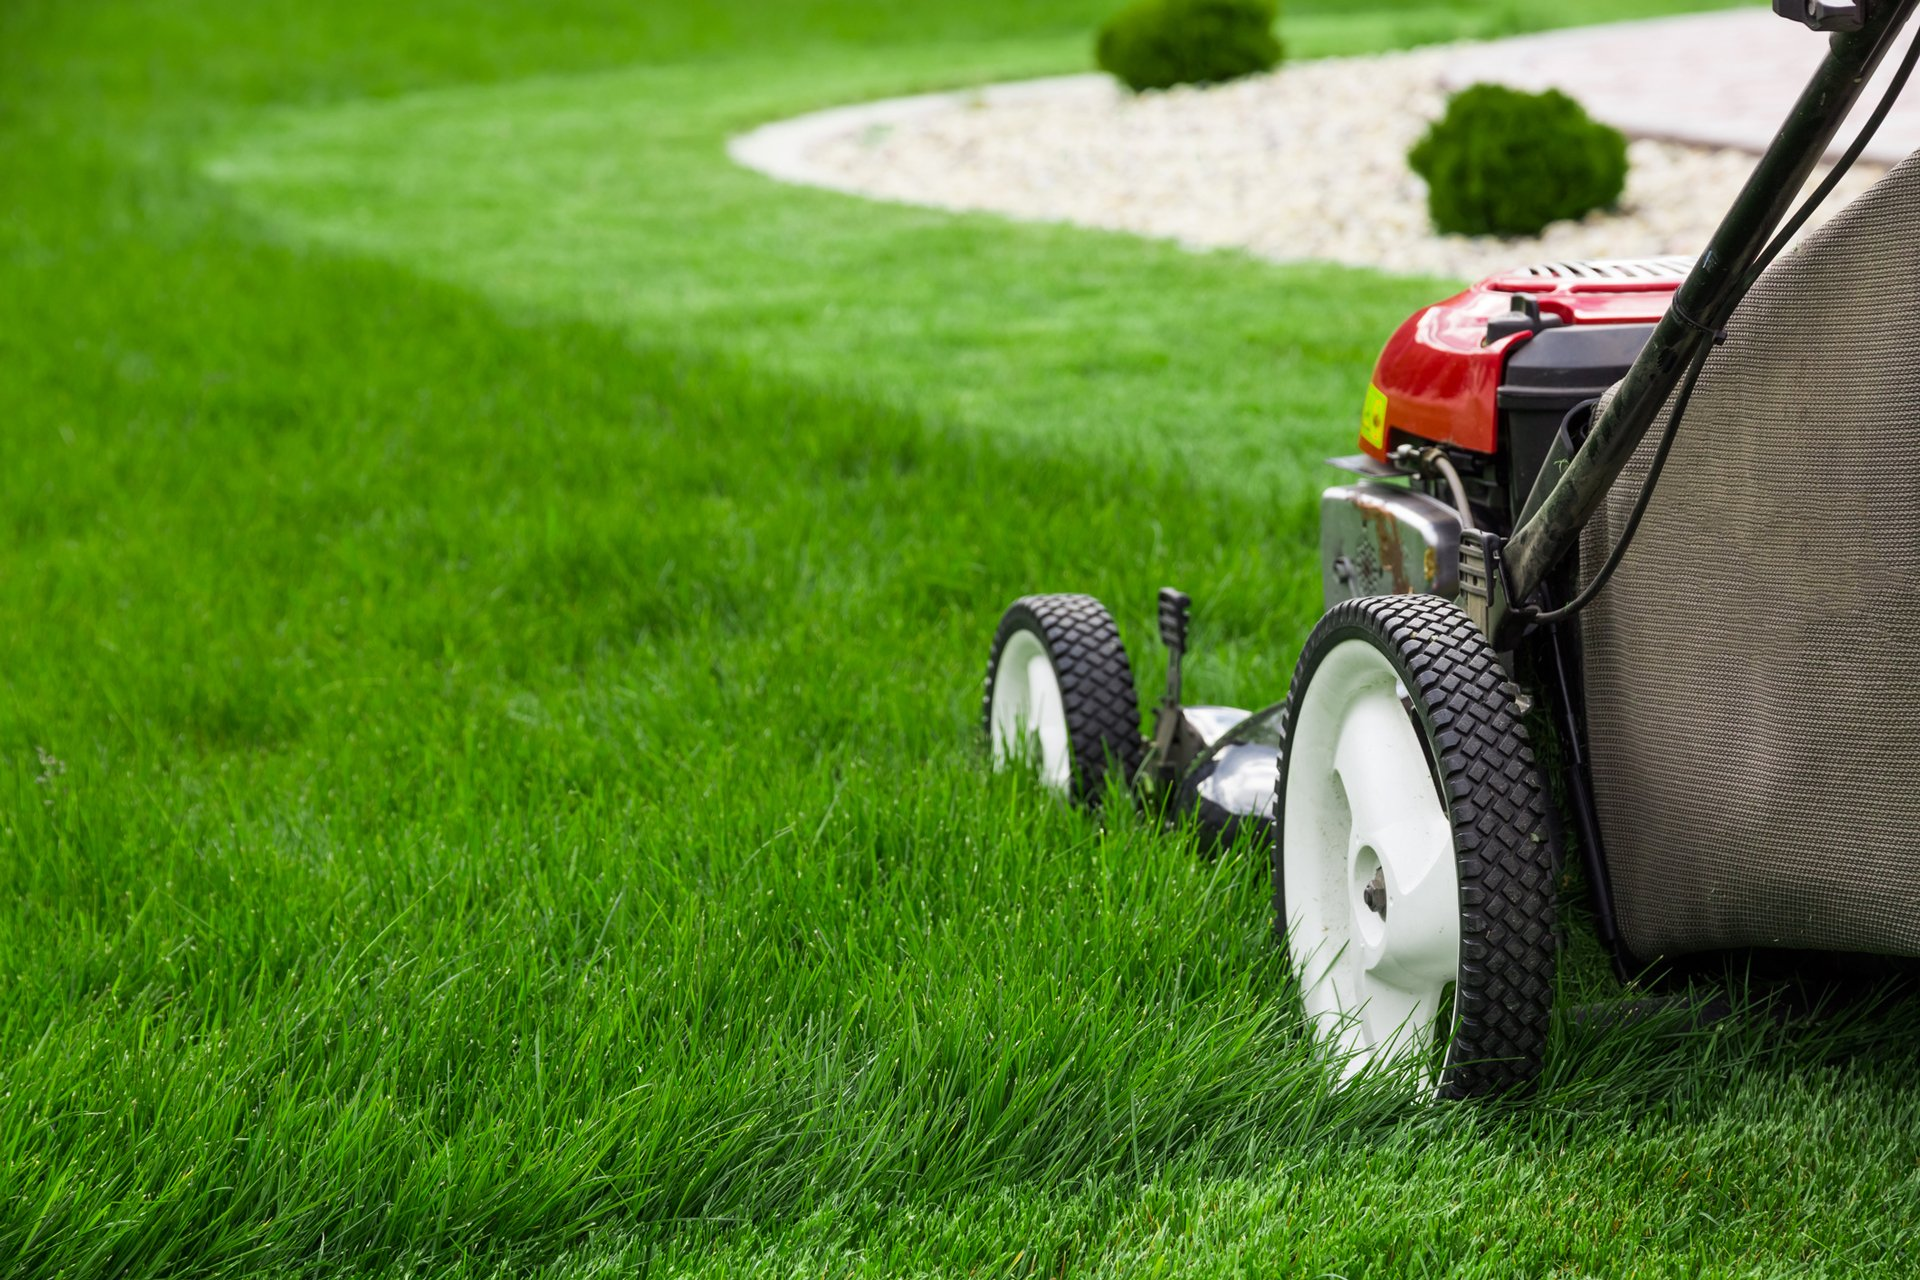 Lawn Care Services in Clarence, NY Turftenders